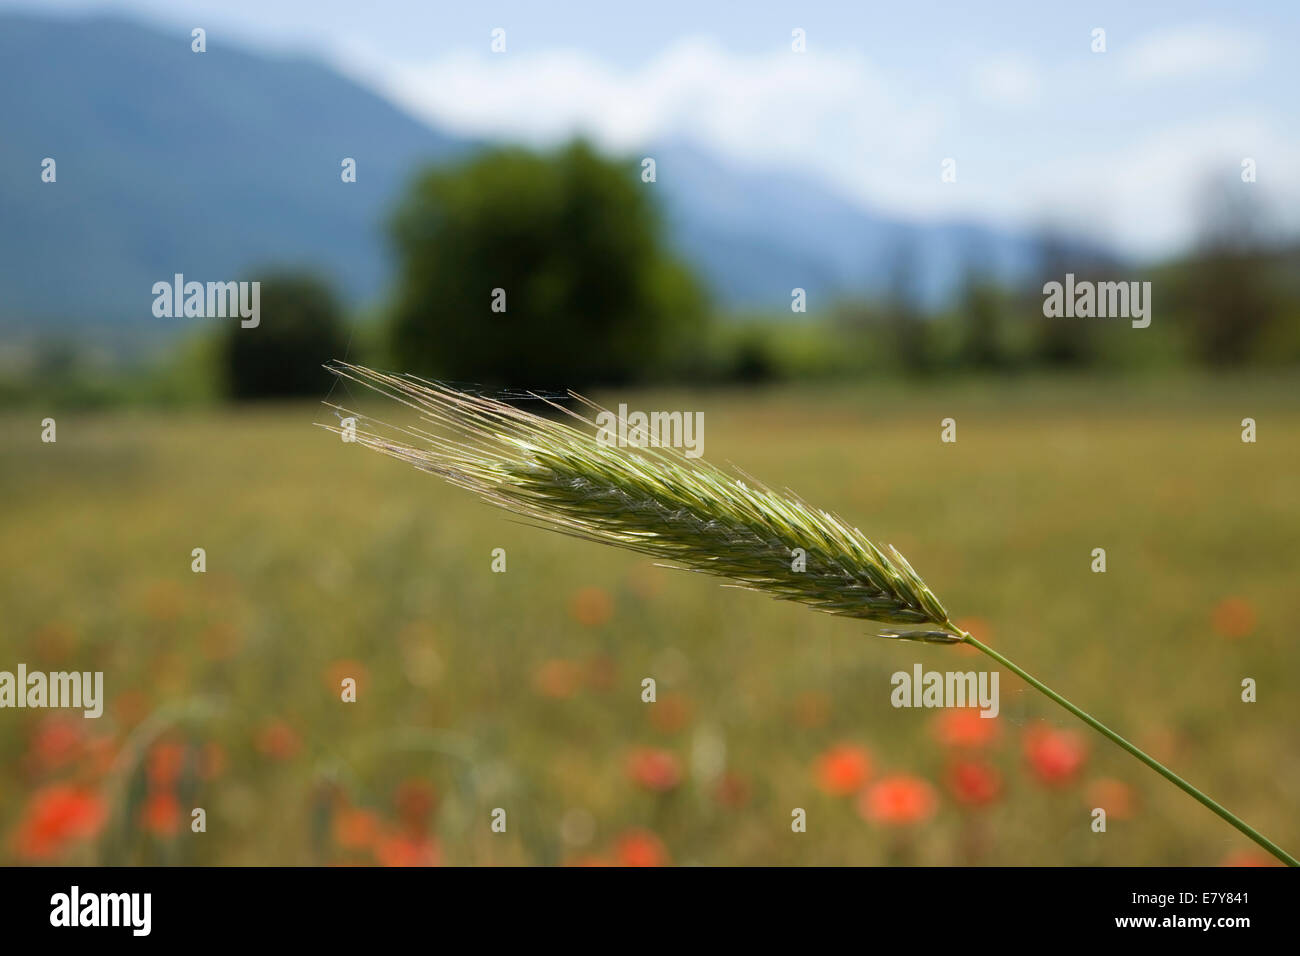 single chaff of wheat growing in a field in a warm and sunny country setting Stock Photo